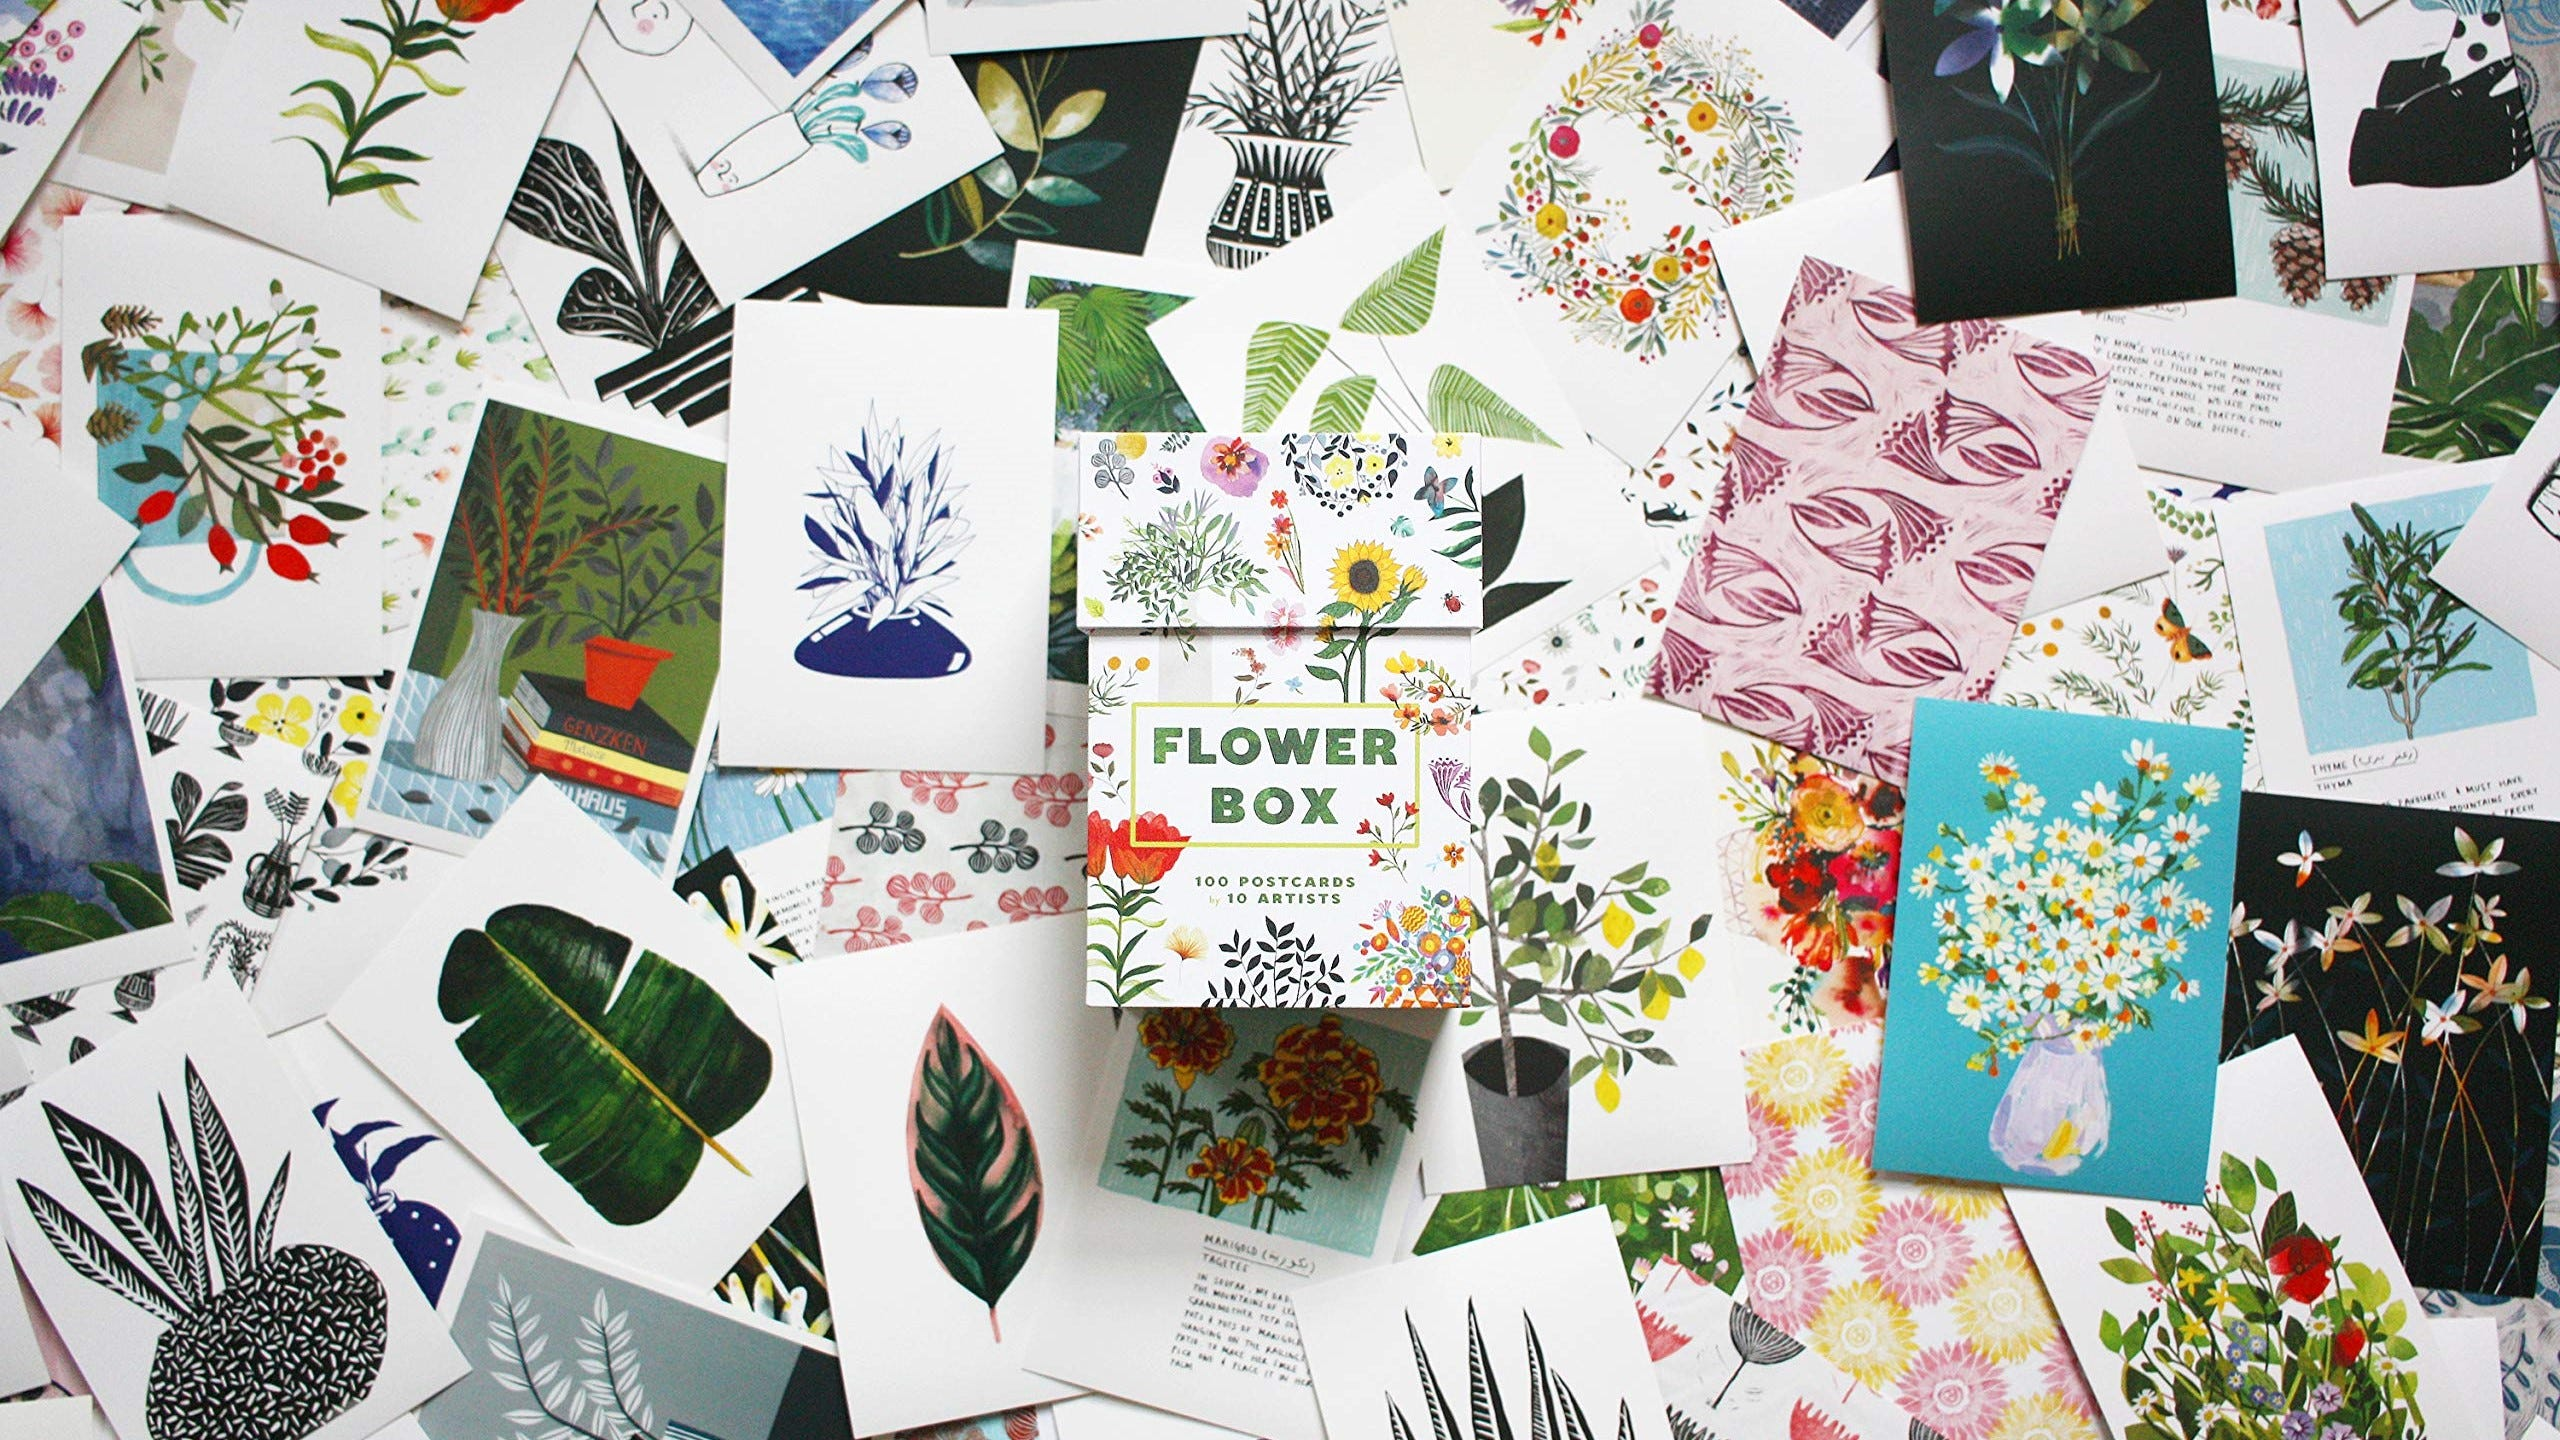 Botanical postcards stacked around the box they come in.